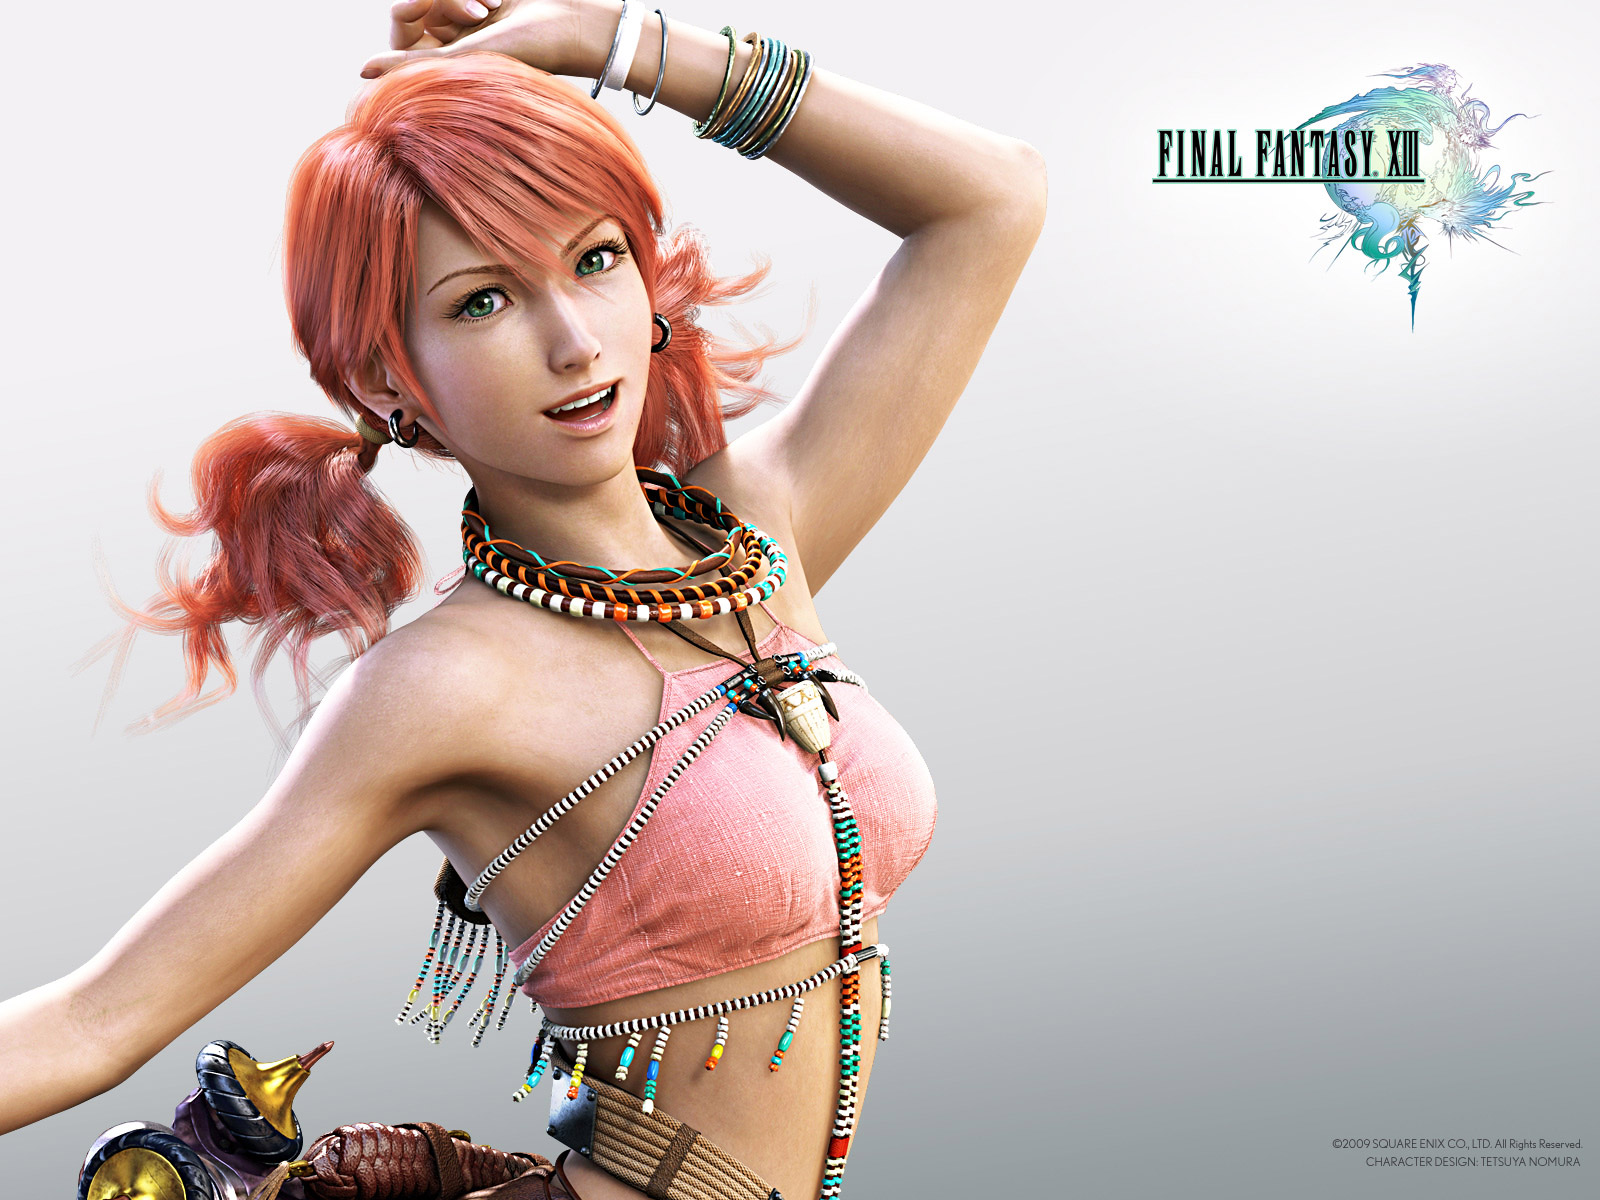 Final Fantasy XIII Game 4 388.21 Kb